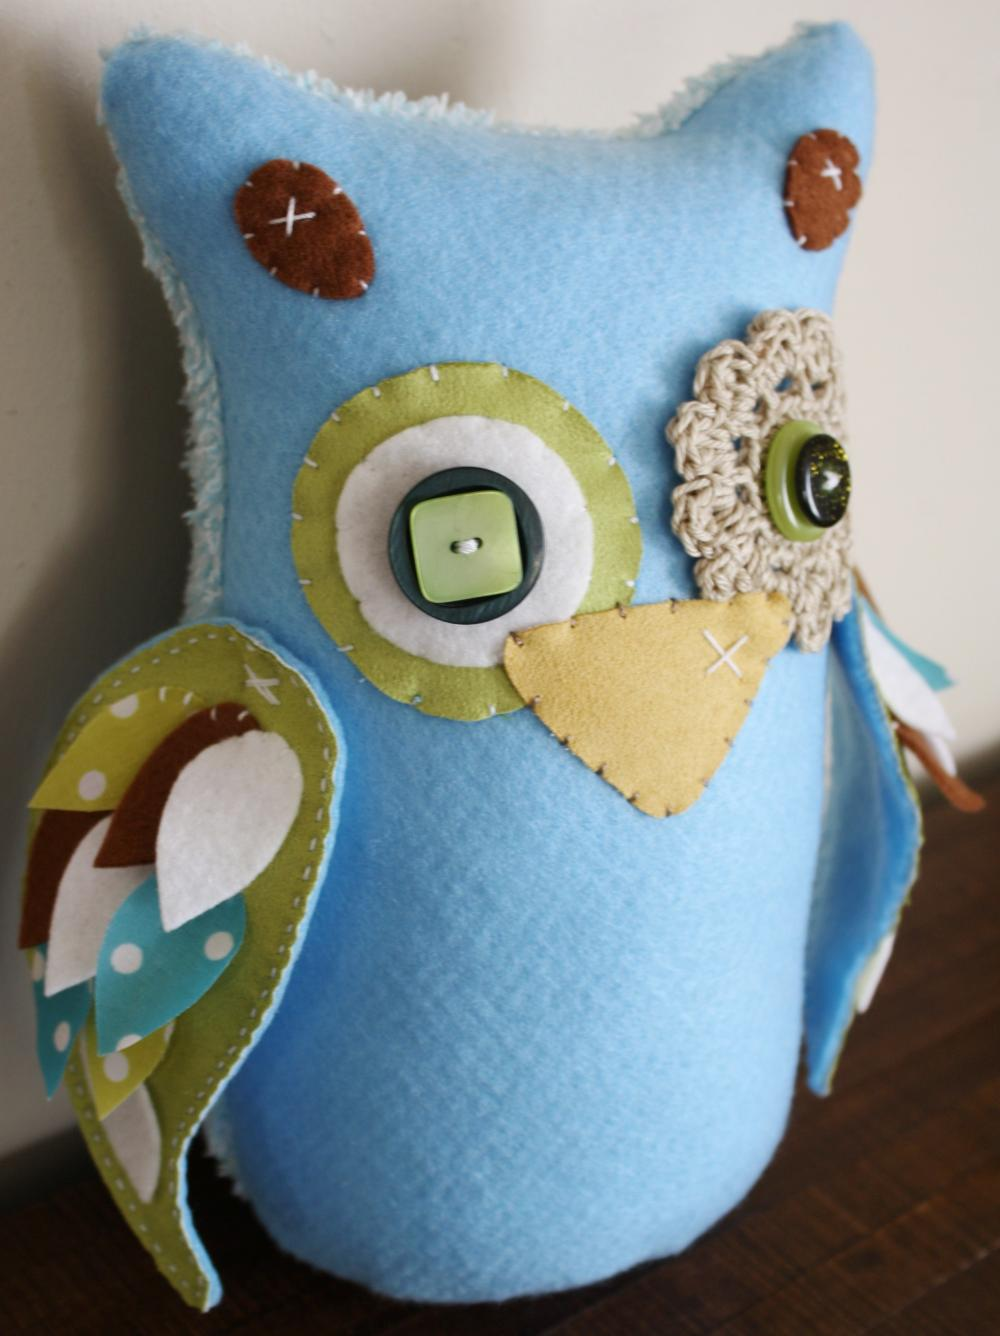 BOO!beloobie Large Orli the Owl in Blue, Green, Chocolate Brown, Cream and white with feather detail on wing Woodland theme